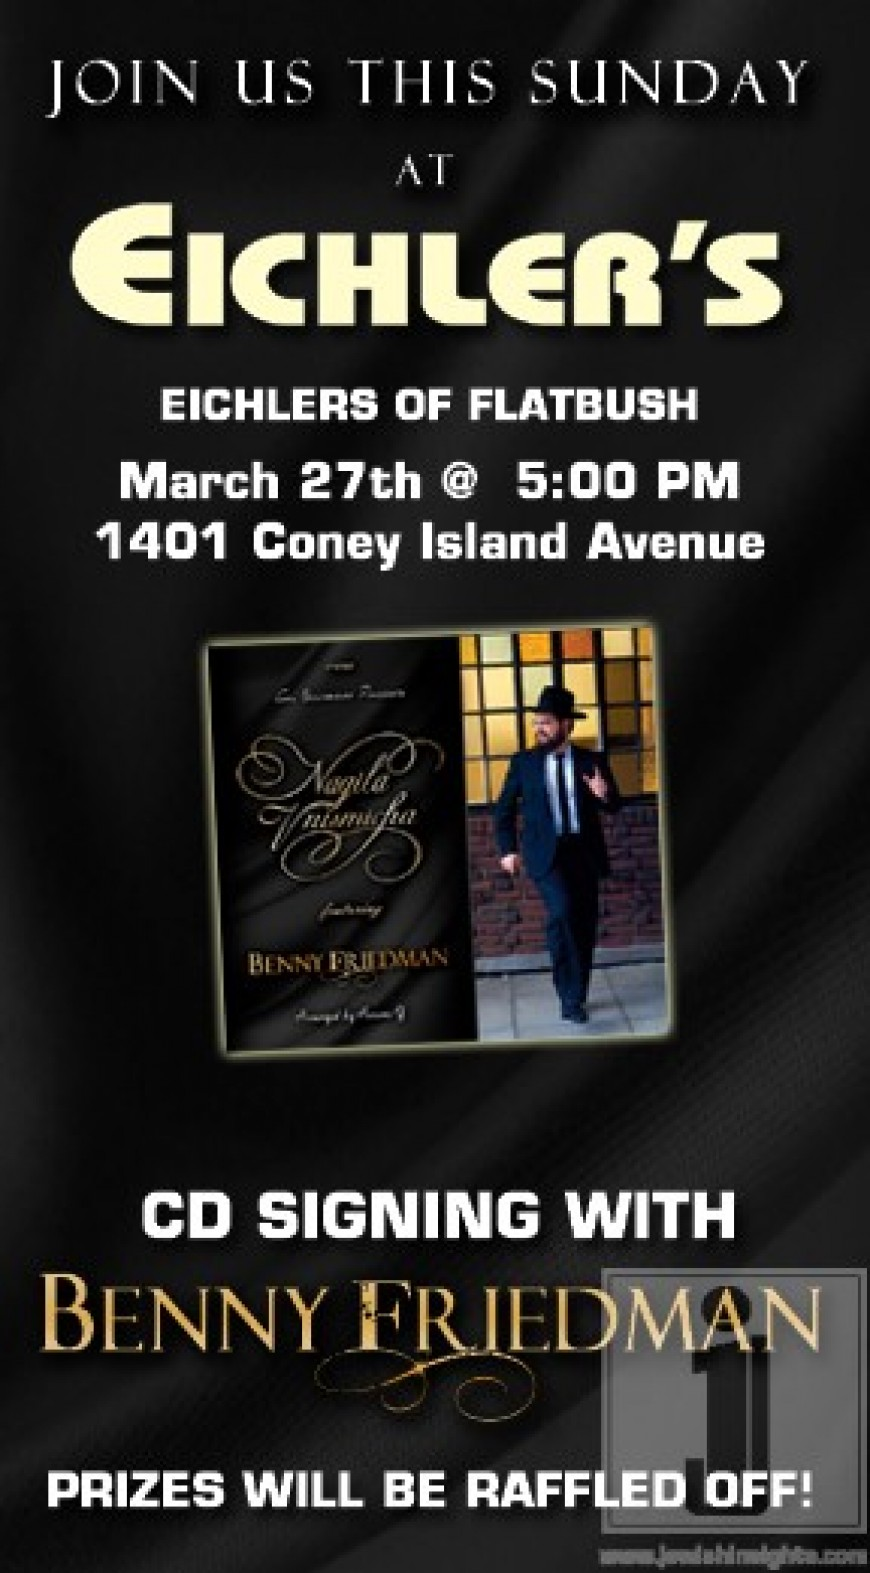 CD SIGNING AT EICHLERS FLATBUSH WITH BENNY FRIEDMAN